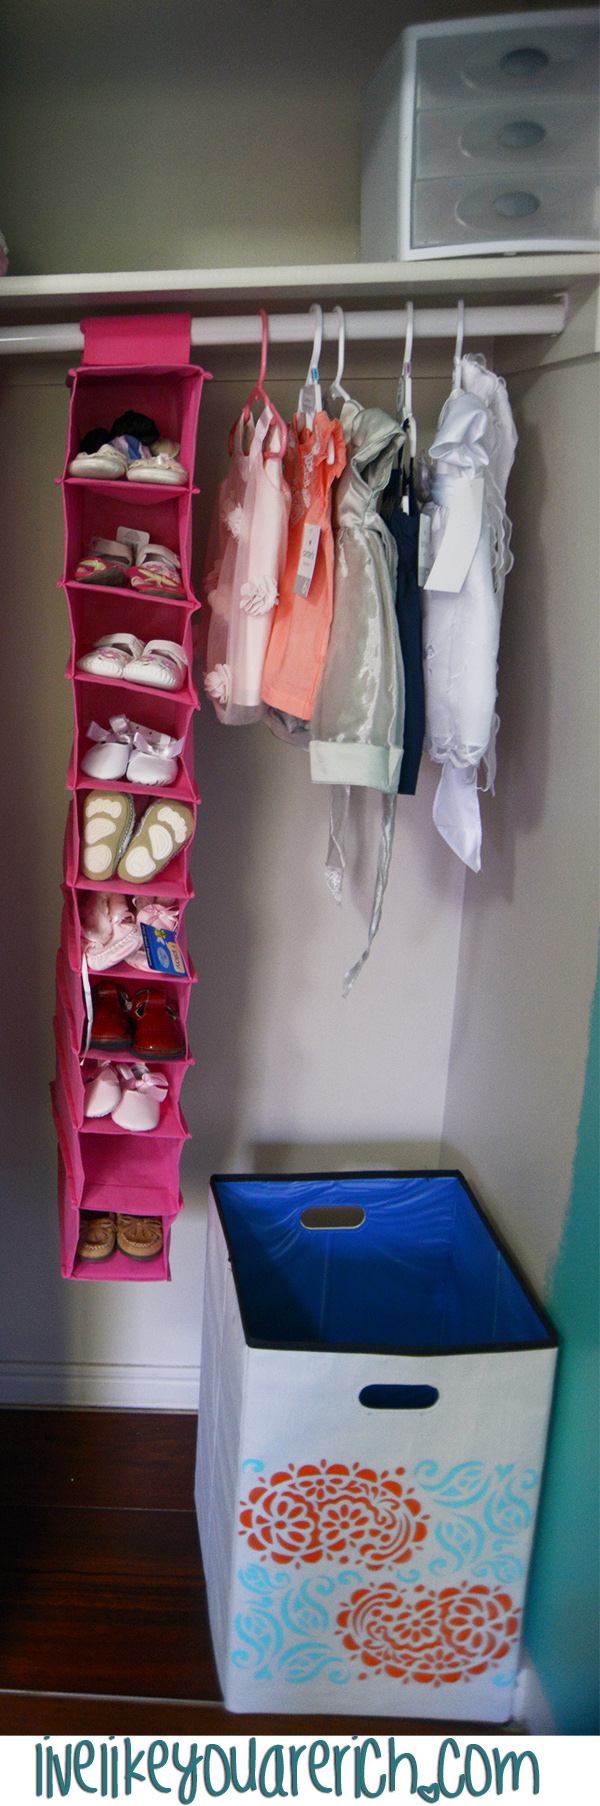 Nursery Closet Organization and Decor